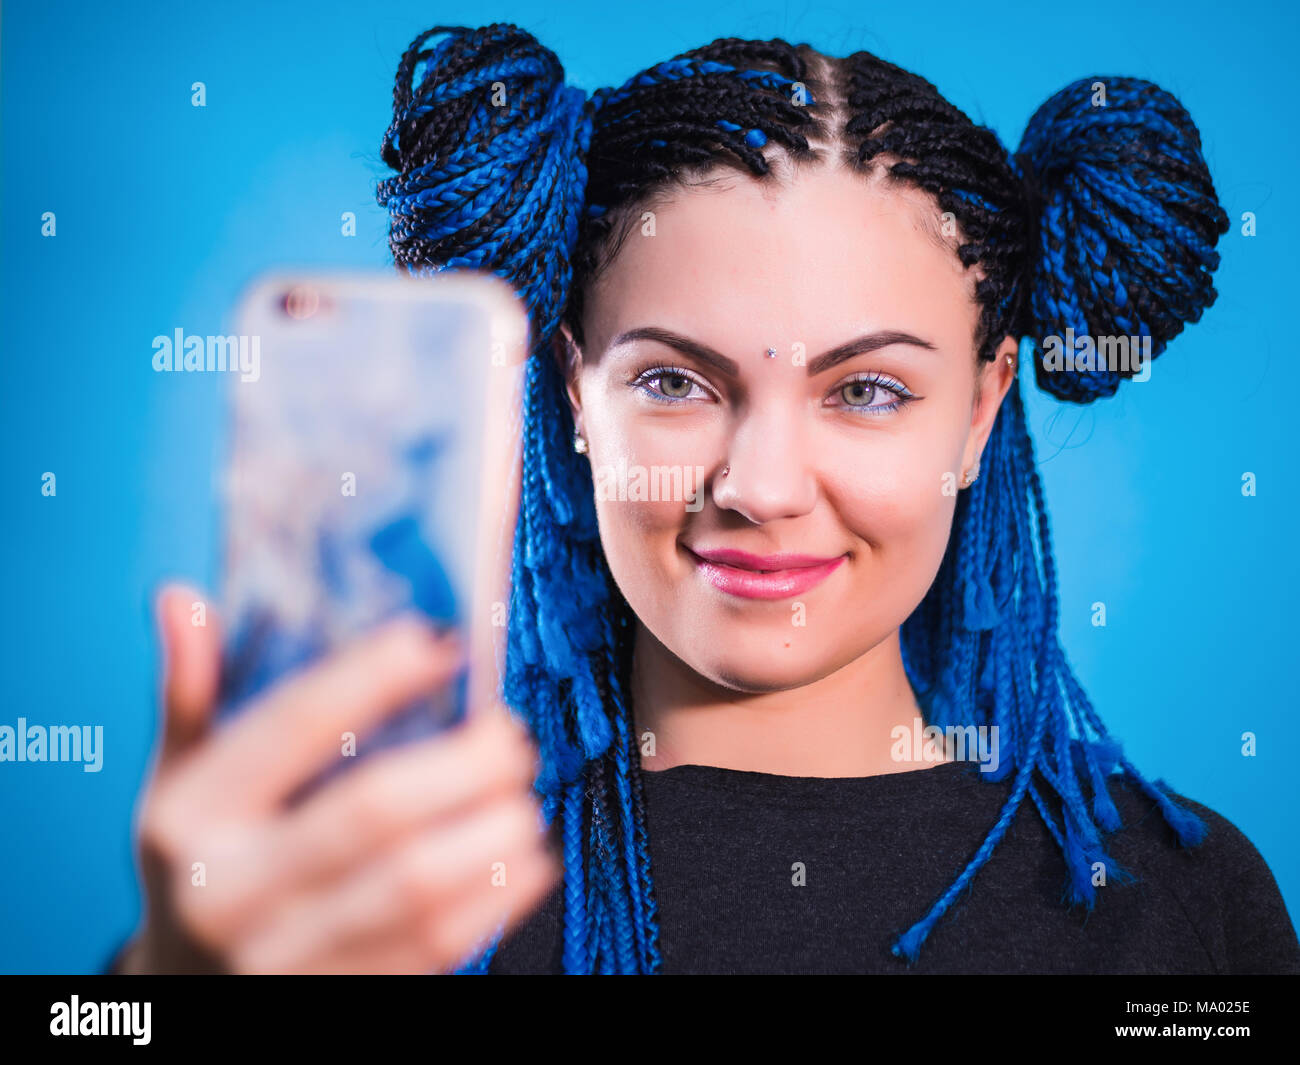 adorable hipster caucasian female with african colorful braids